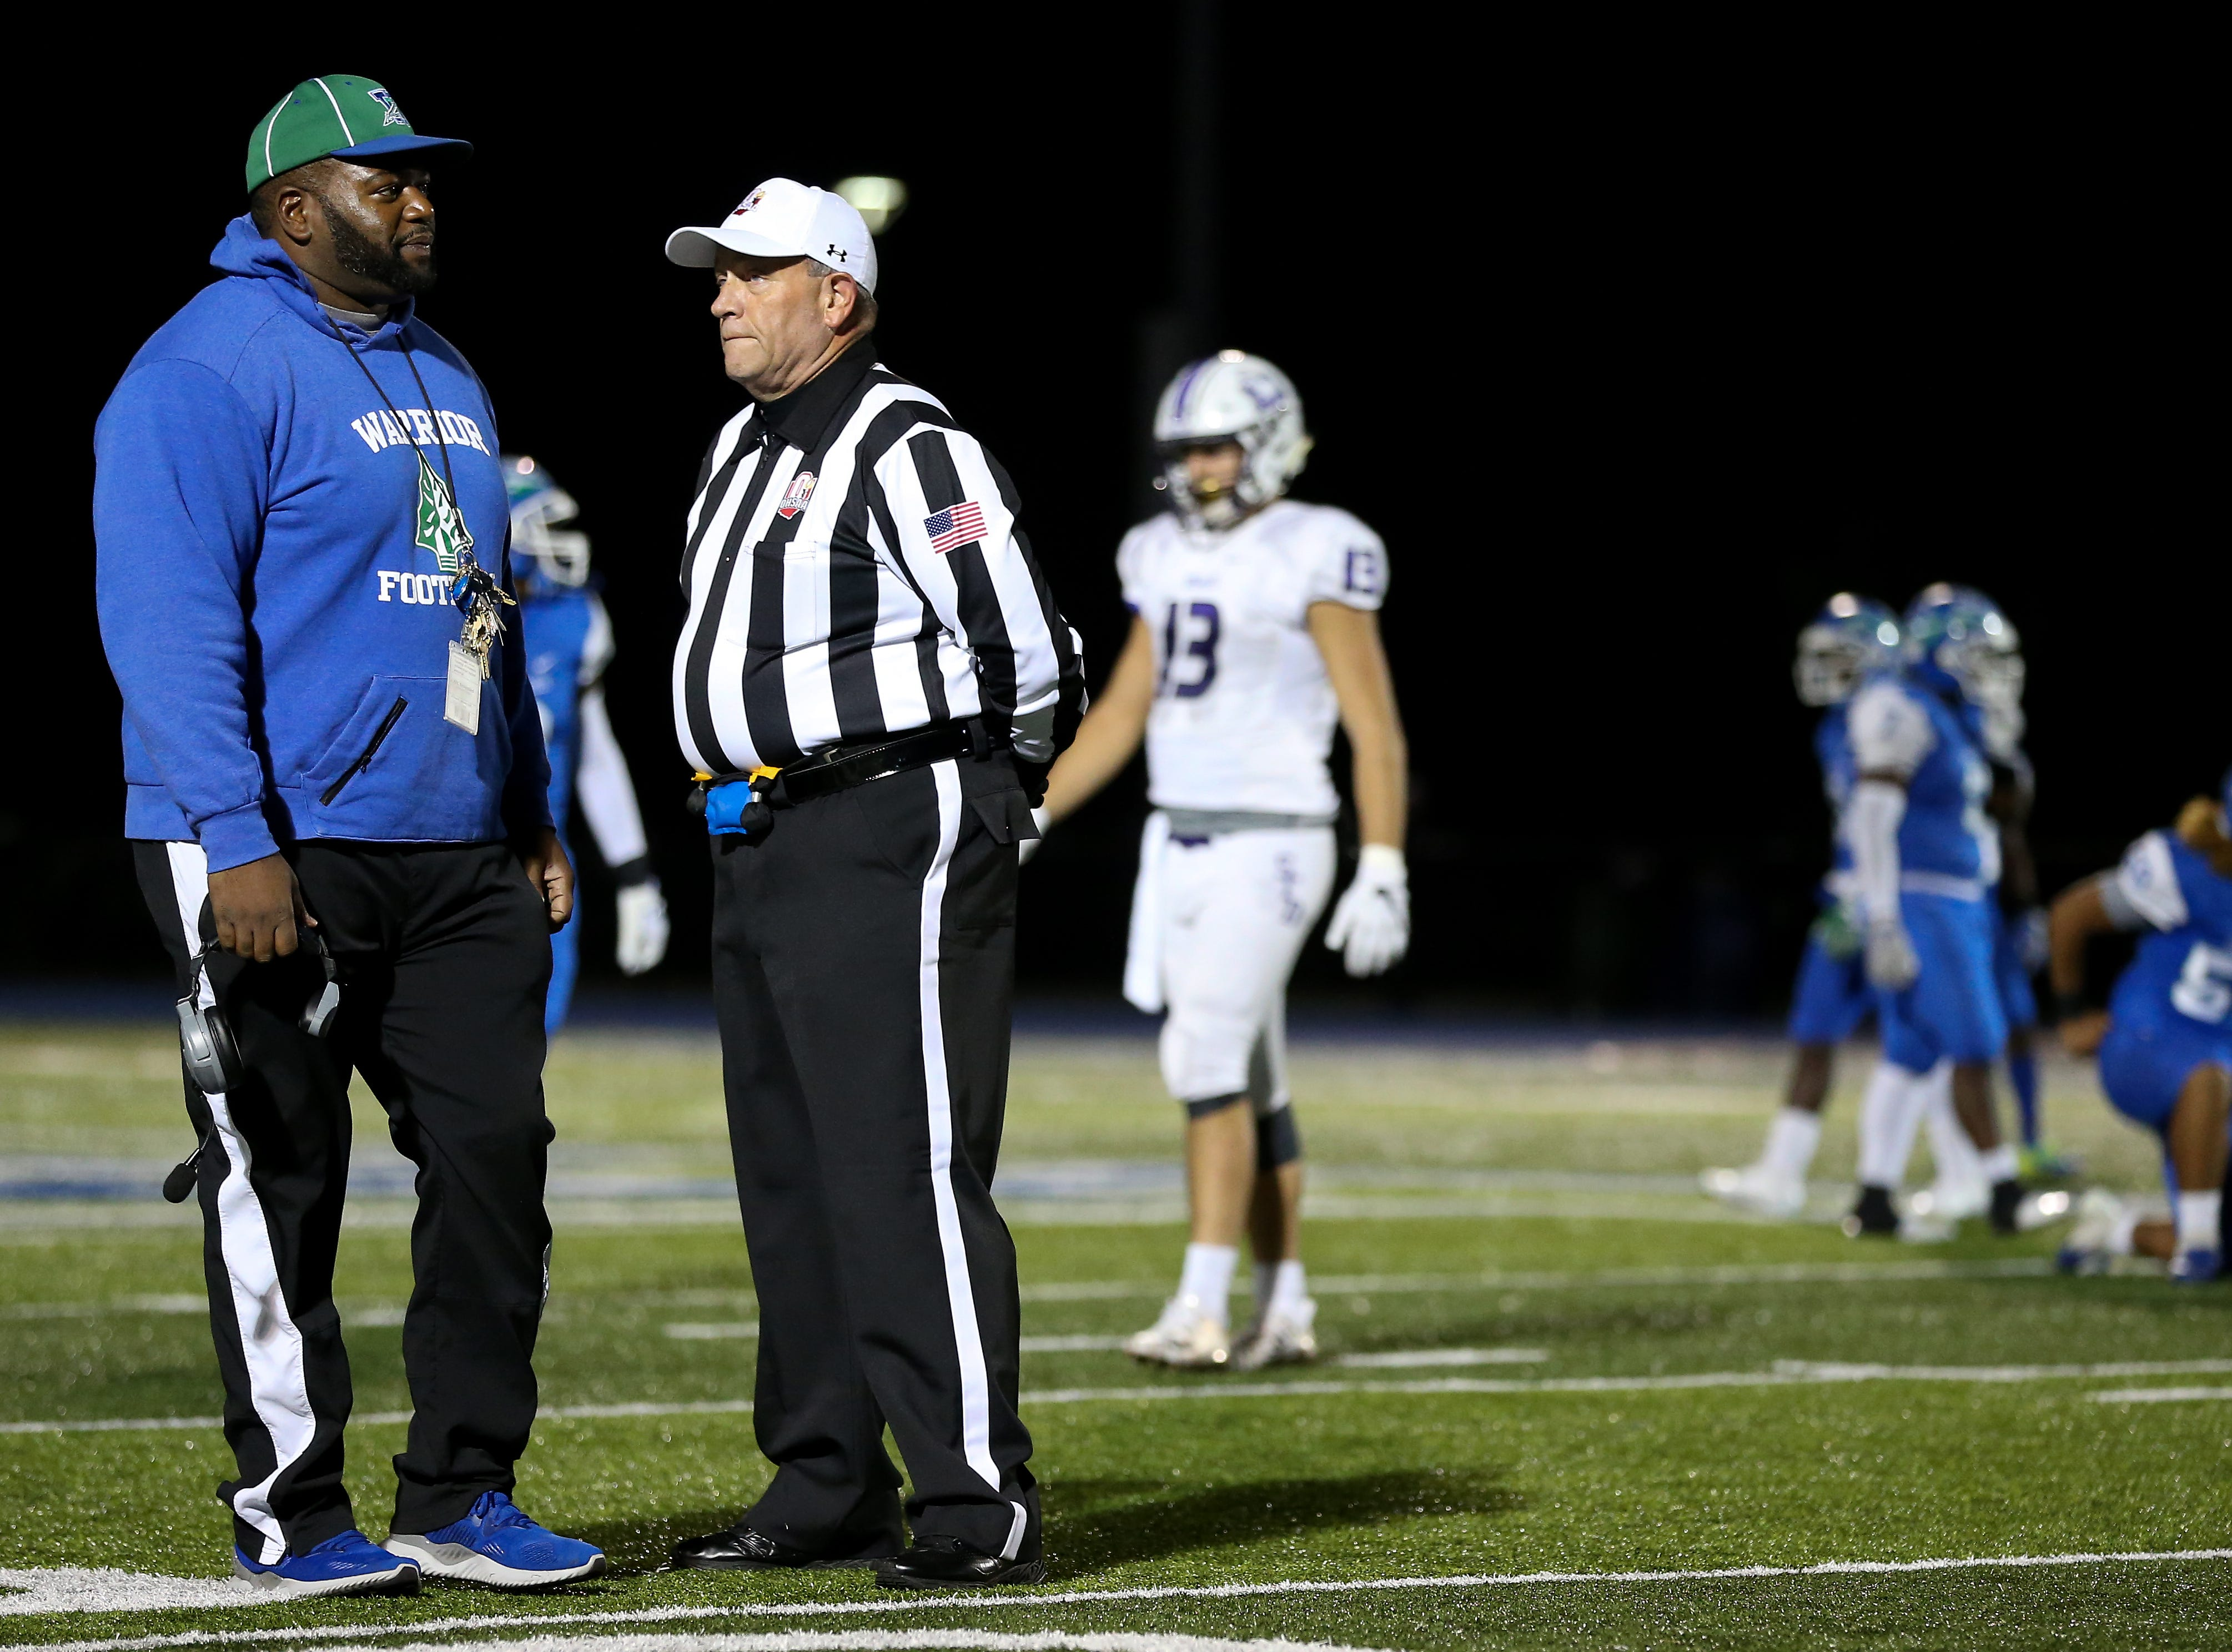 Winton Woods Warriors head coach Andre Parker, left, reacts after a discussion with the referee in the second quarter during a high school football game between St. Francis de Sales and Winton Woods, Friday, Oct. 19, 2018, at Winton Woods High School in Forest Park, Ohio.